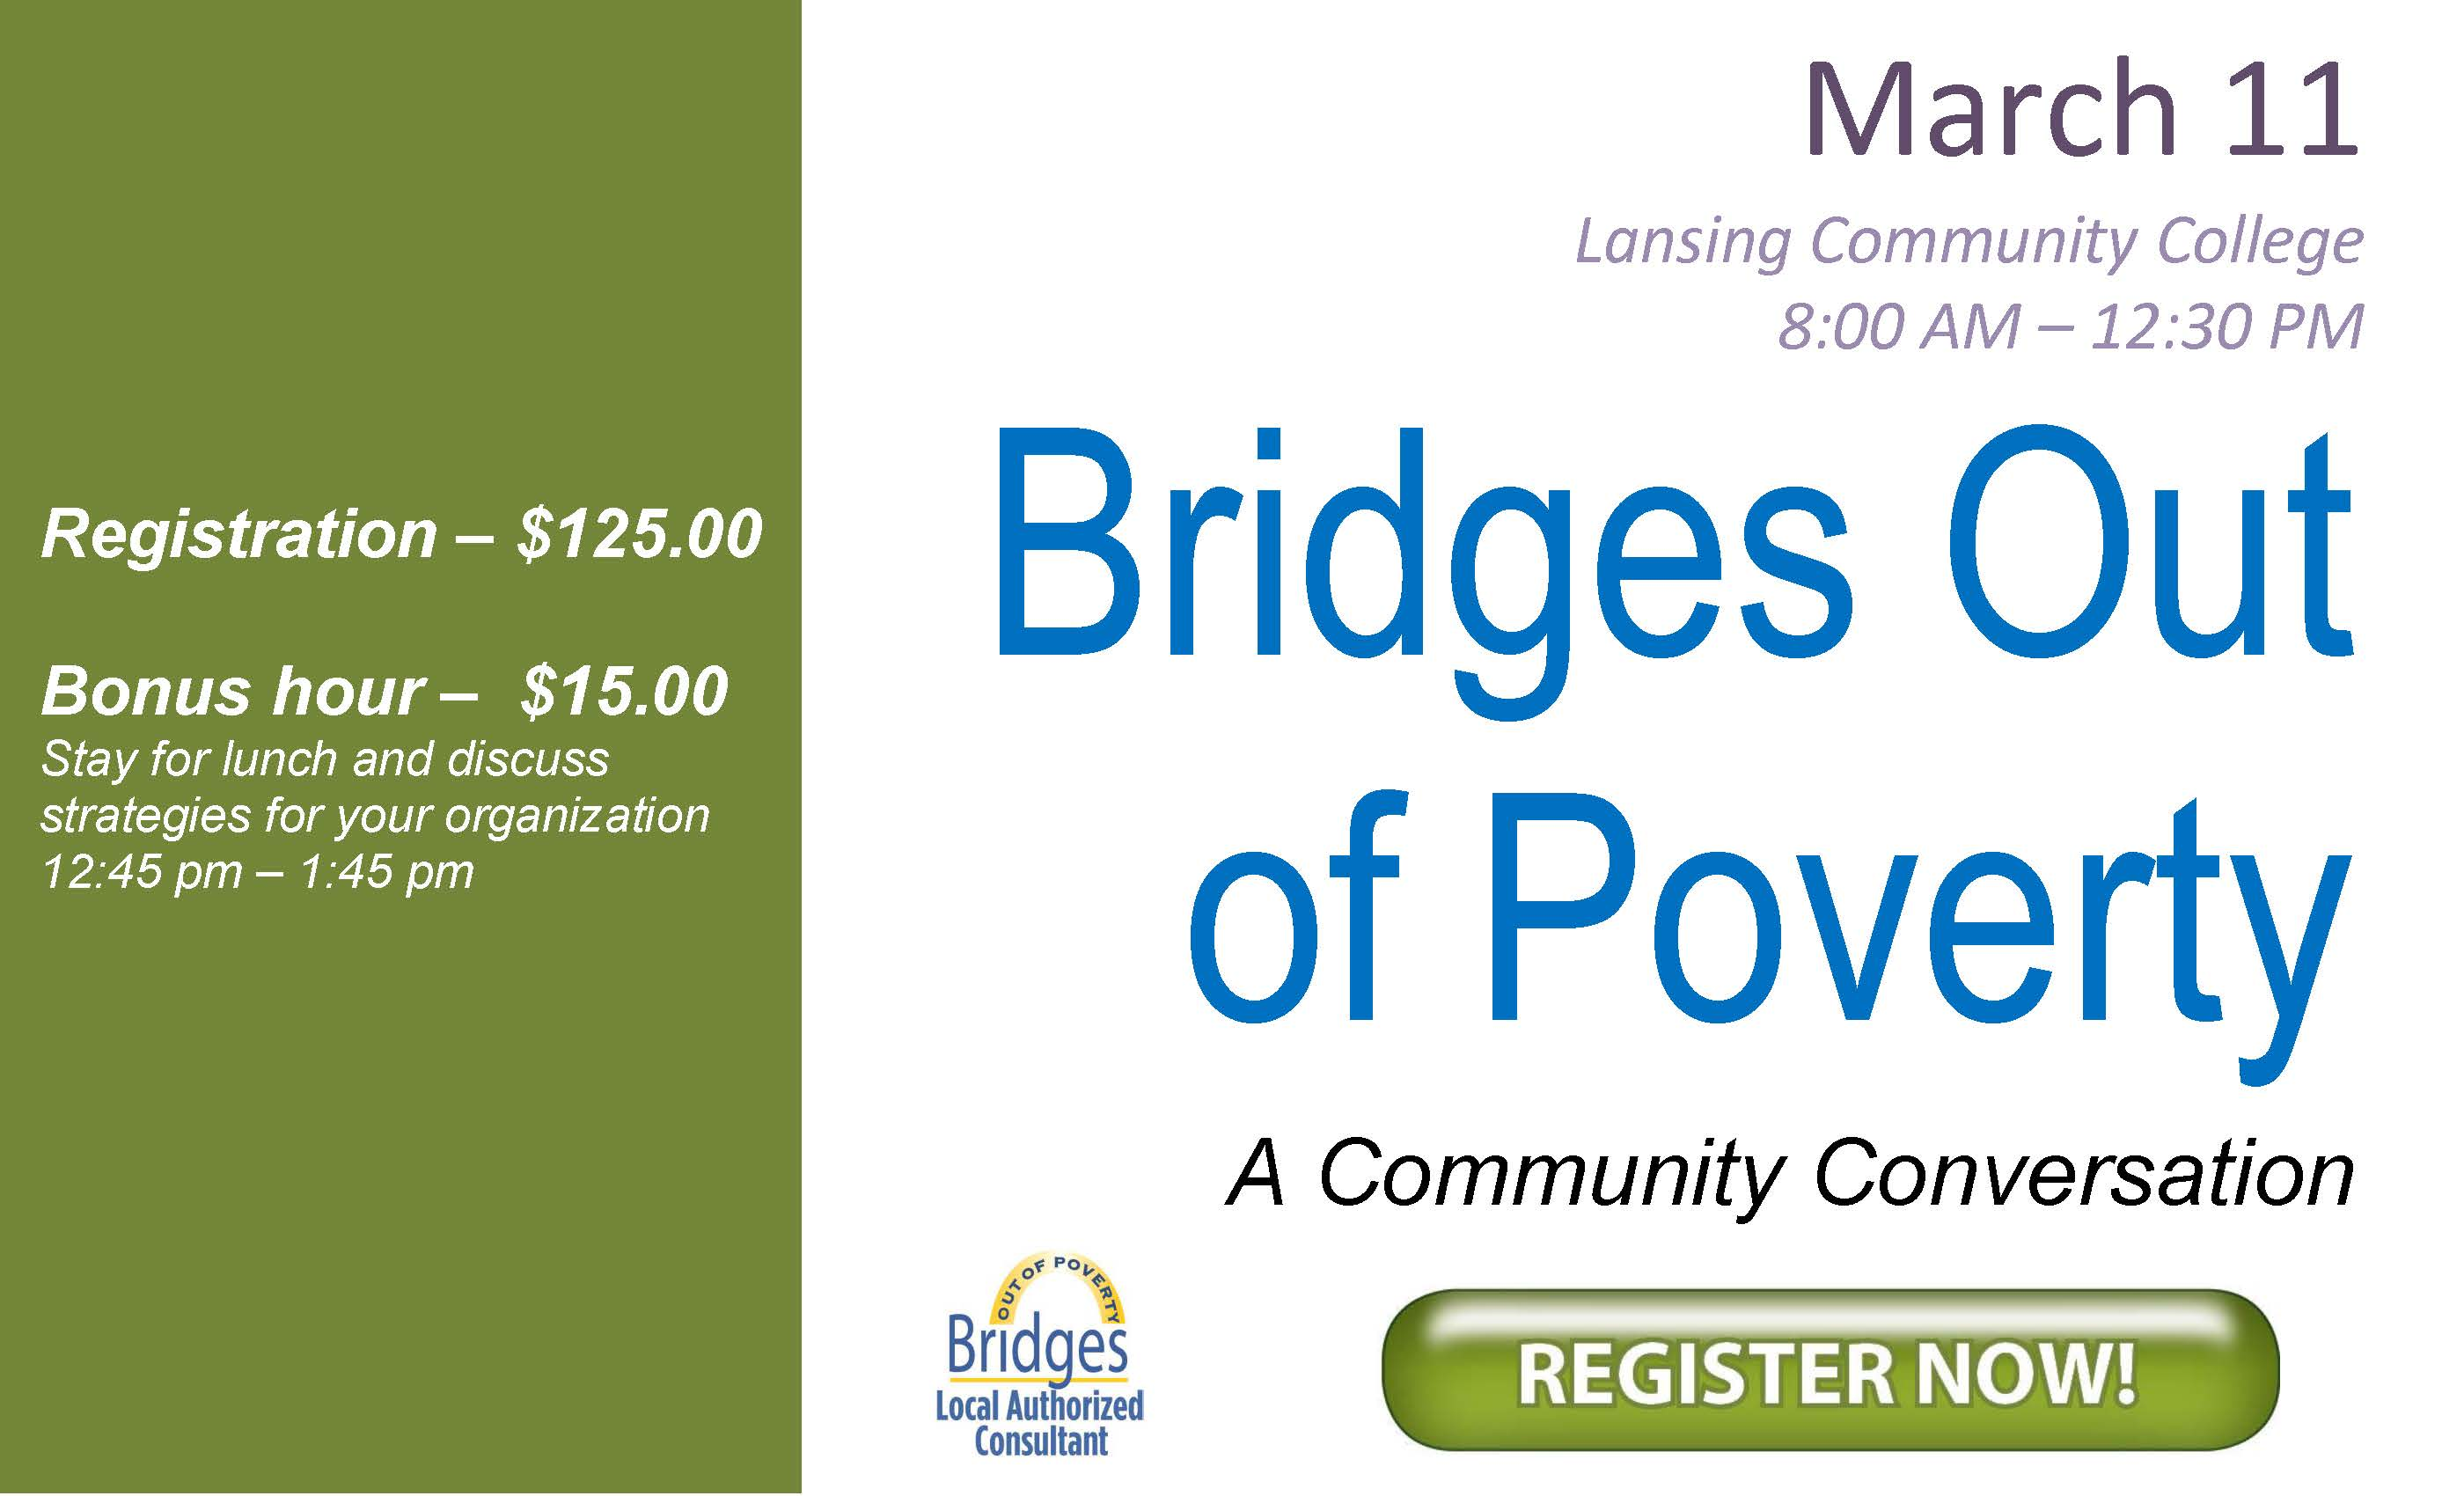 Click here to register for Bridges Out of Poverty